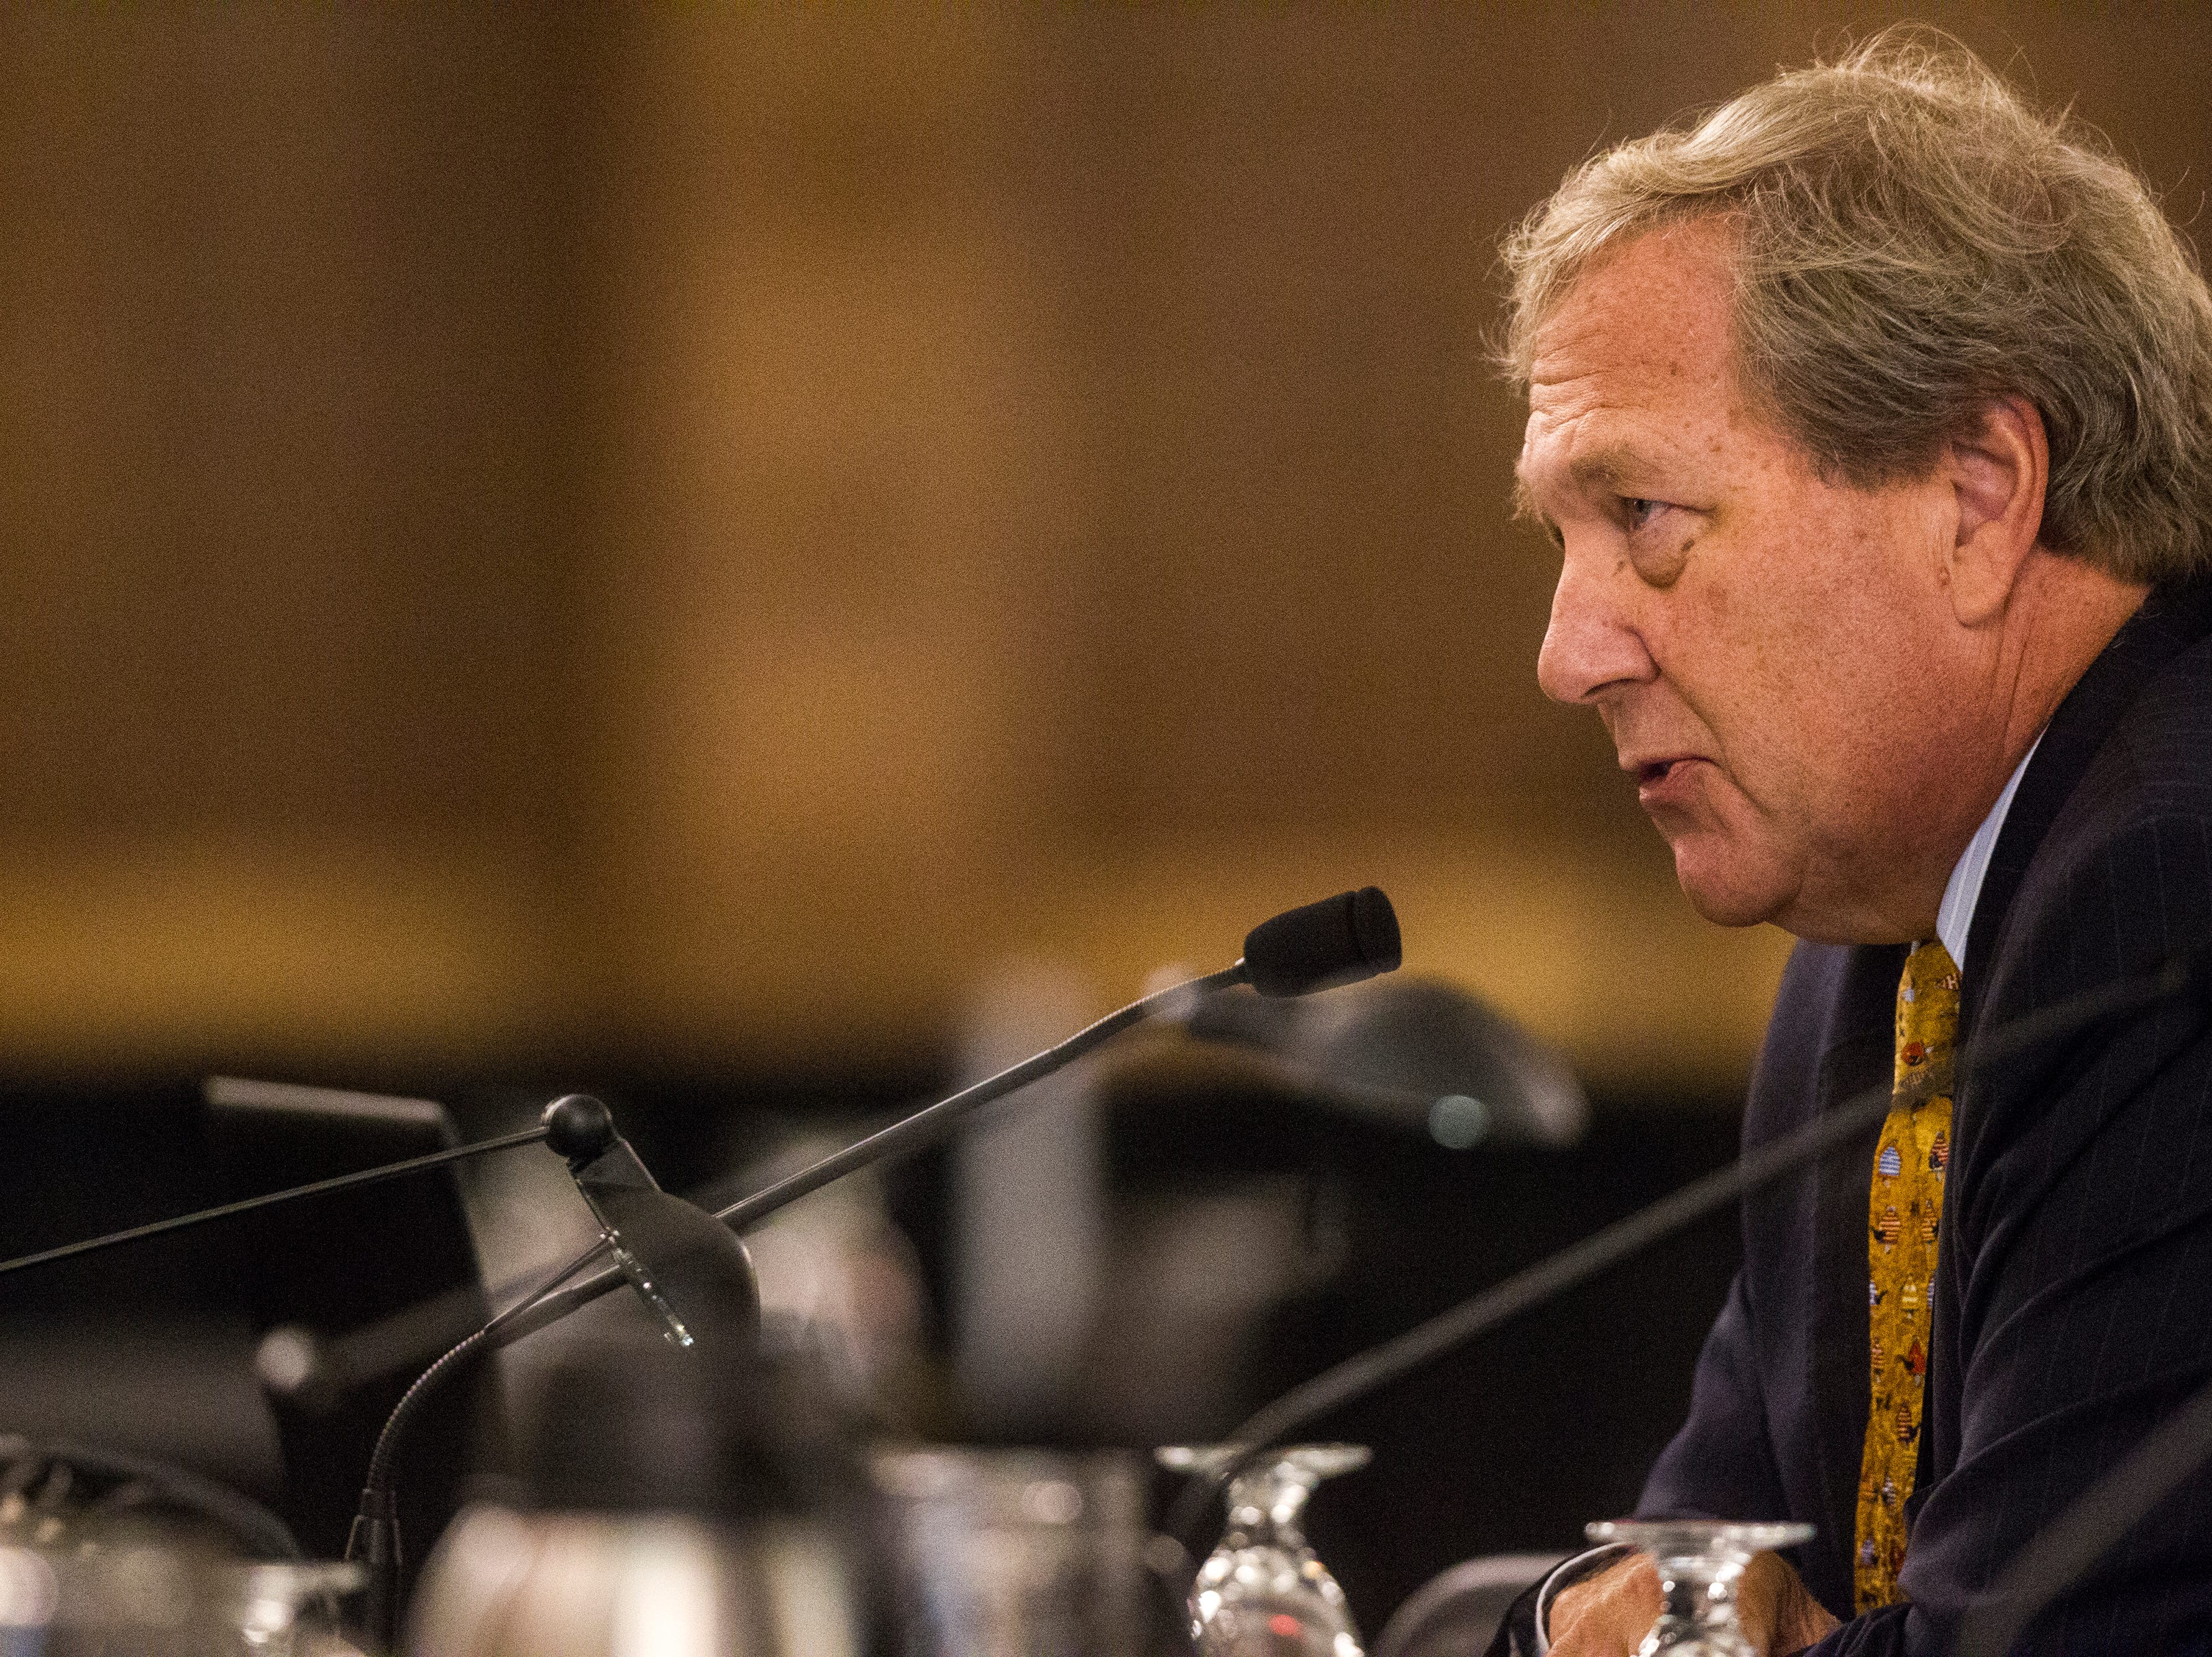 University of Iowa President J. Bruce Harreld speaks during an Iowa Board of Regents meeting on Thursday, Sept. 13, 2018, in the Iowa Memorial Union main ballroom on the University of Iowa campus in Iowa City.